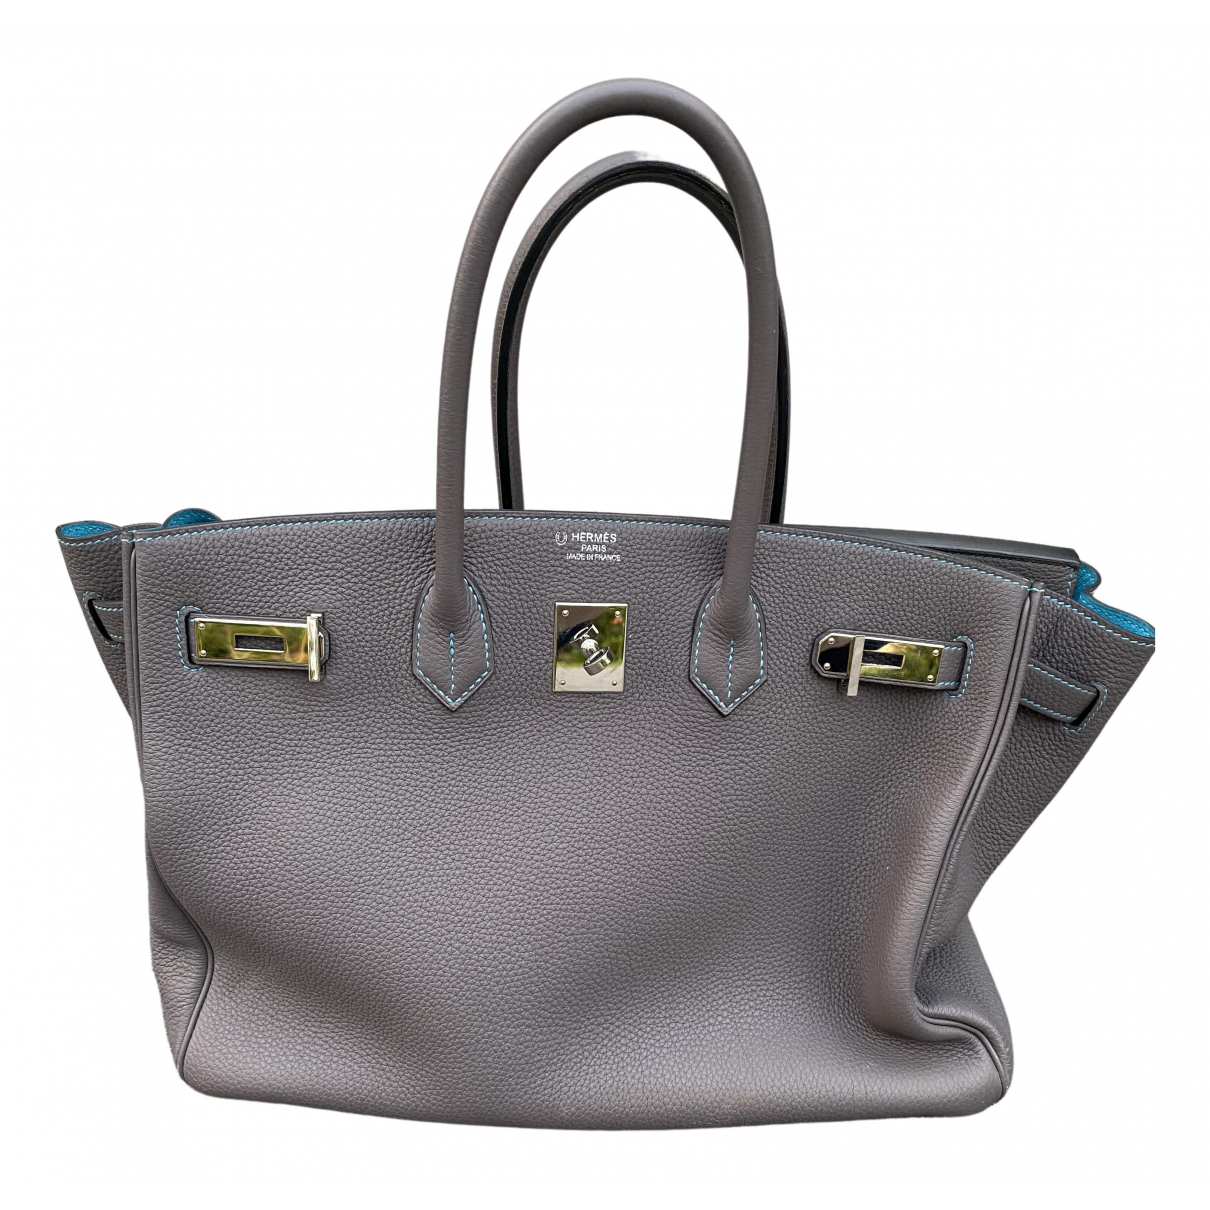 Hermès Birkin 35 Grey Leather handbag for Women N